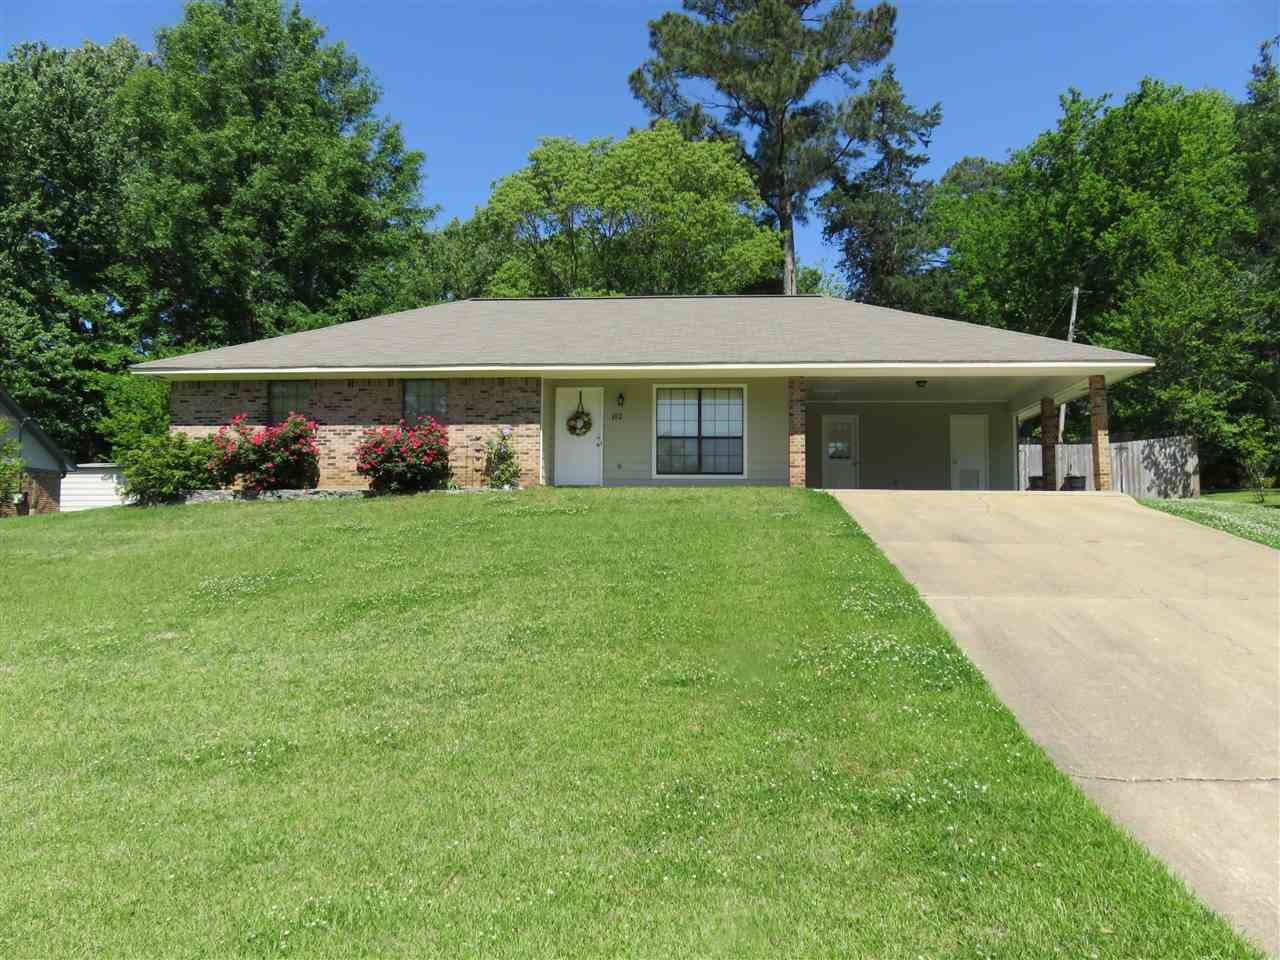 102 MCLENDON DR, Raymond, MS 39154 - MLS#: 339792